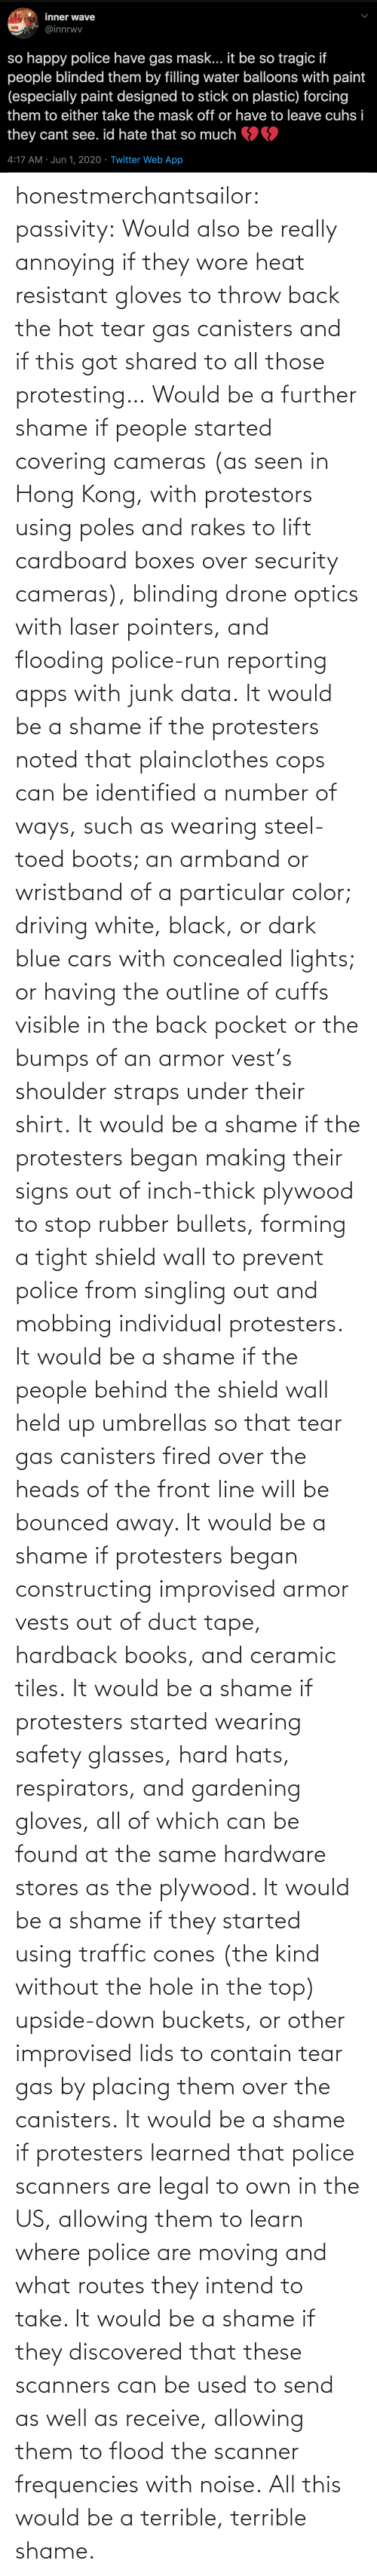 Front: honestmerchantsailor:  passivity: Would also be really annoying if they wore heat resistant gloves to throw back the hot tear gas canisters and if this got shared to all those protesting… Would be a further shame if people started covering cameras (as seen in Hong Kong, with protestors using poles and rakes to lift cardboard boxes over security cameras), blinding drone optics with laser pointers, and flooding police-run reporting apps with junk data. It would be a shame if the protesters noted that plainclothes cops can be identified a number of ways, such as wearing steel-toed boots; an armband or wristband of a particular color; driving white, black, or dark blue cars with concealed lights; or having the outline of cuffs visible in the back pocket or the bumps of an armor vest's shoulder straps under their shirt. It would be a shame if the protesters began making their signs out of inch-thick plywood to stop rubber bullets, forming a tight shield wall to prevent police from singling out and mobbing individual protesters. It would be a shame if the people behind the shield wall held up umbrellas so that tear gas canisters fired over the heads of the front line will be bounced away. It would be a shame if protesters began constructing improvised armor vests out of duct tape, hardback books, and ceramic tiles. It would be a shame if protesters started wearing safety glasses, hard hats, respirators, and gardening gloves, all of which can be found at the same hardware stores as the plywood. It would be a shame if they started using traffic cones (the kind without the hole in the top) upside-down buckets, or other improvised lids to contain tear gas by placing them over the canisters. It would be a shame if protesters learned that police scanners are legal to own in the US, allowing them to learn where police are moving and what routes they intend to take. It would be a shame if they discovered that these scanners can be used to send as well as receive, allowing them to flood the scanner frequencies with noise. All this would be a terrible, terrible shame.